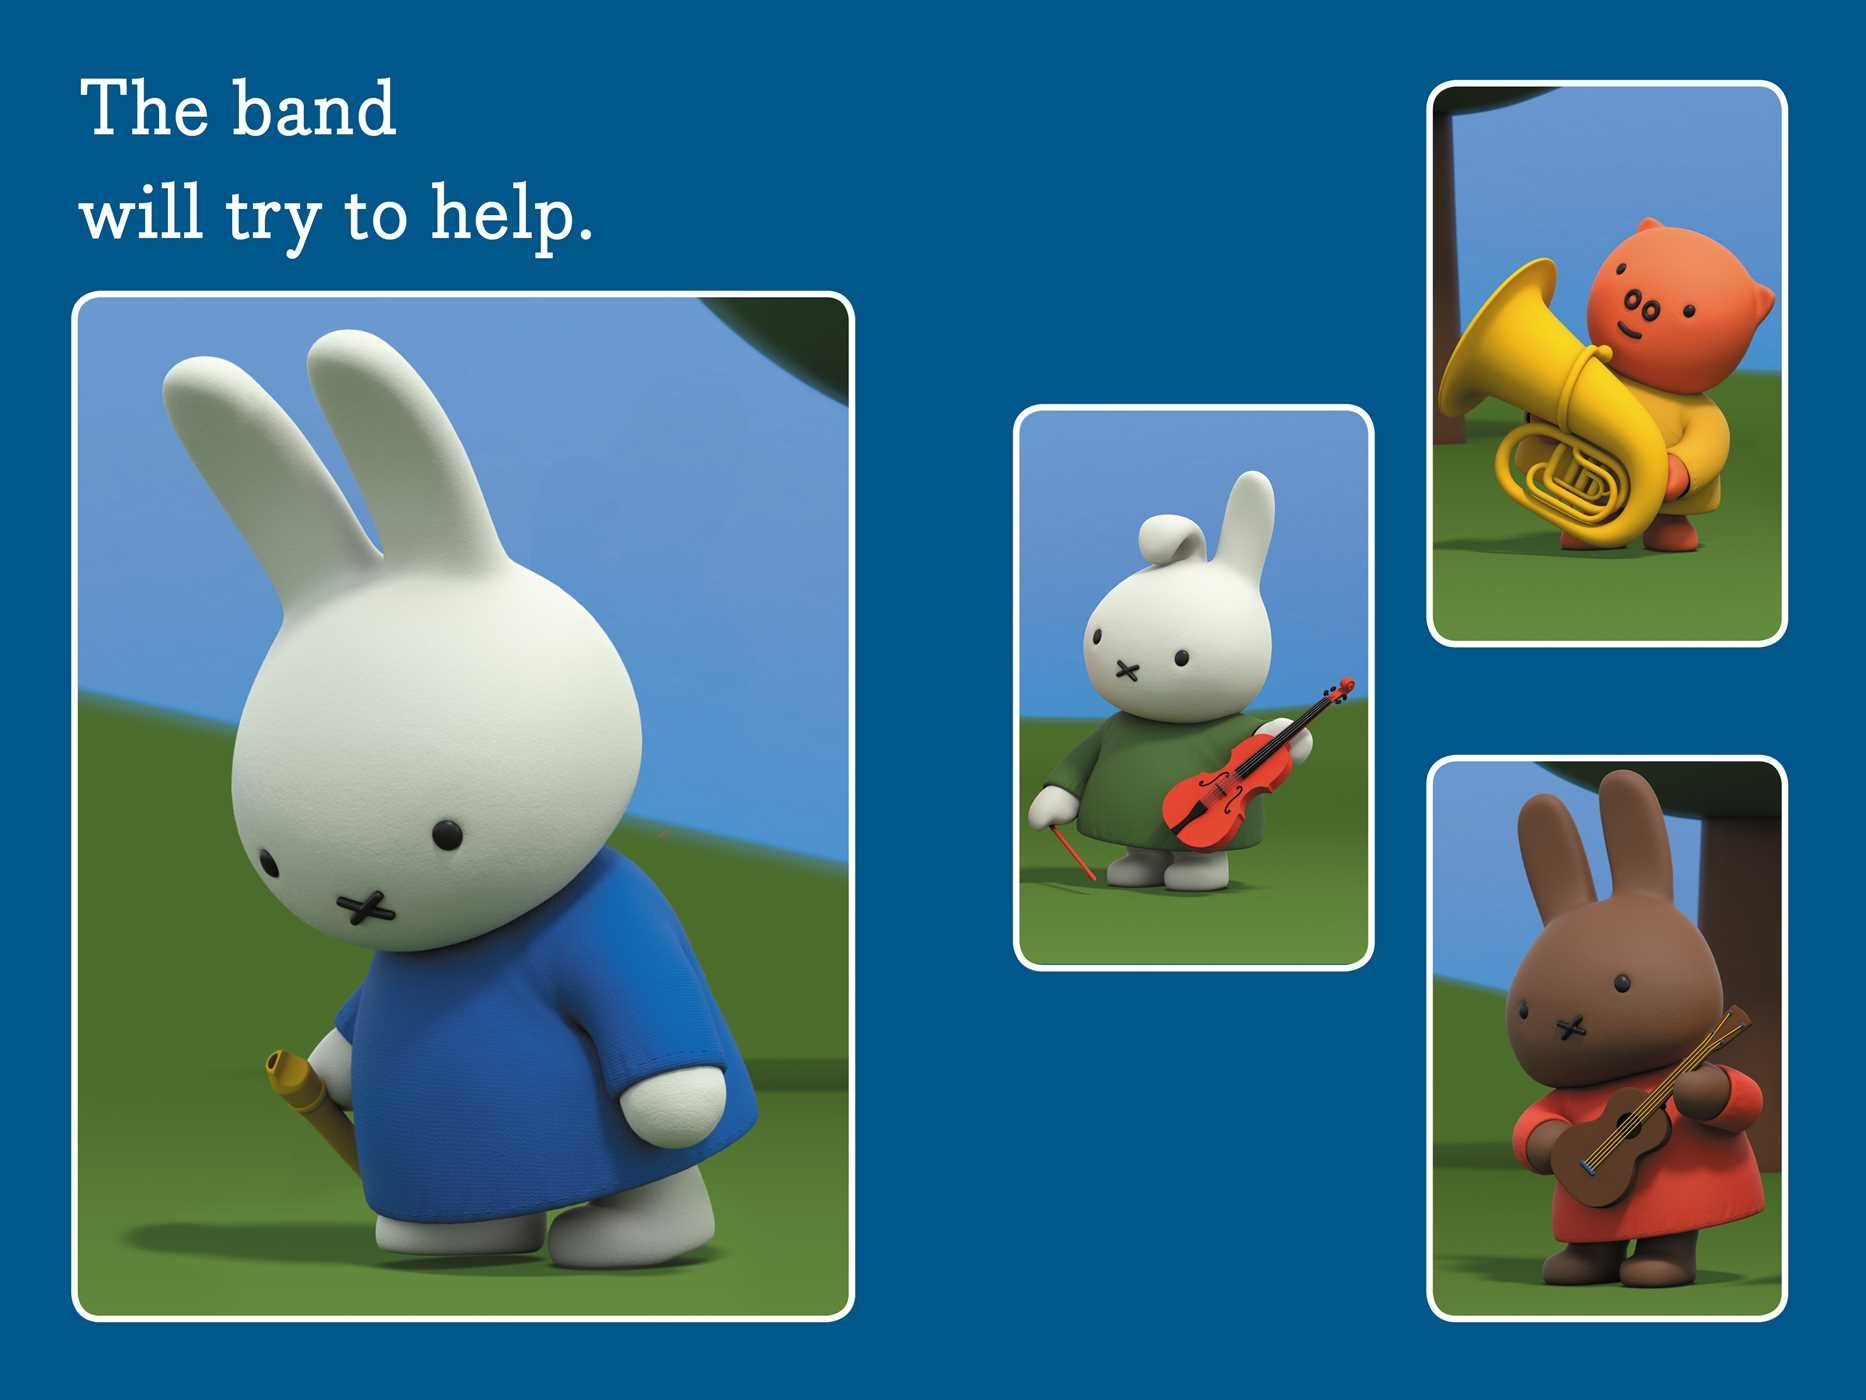 Miffy and the band 9781534416239.in05